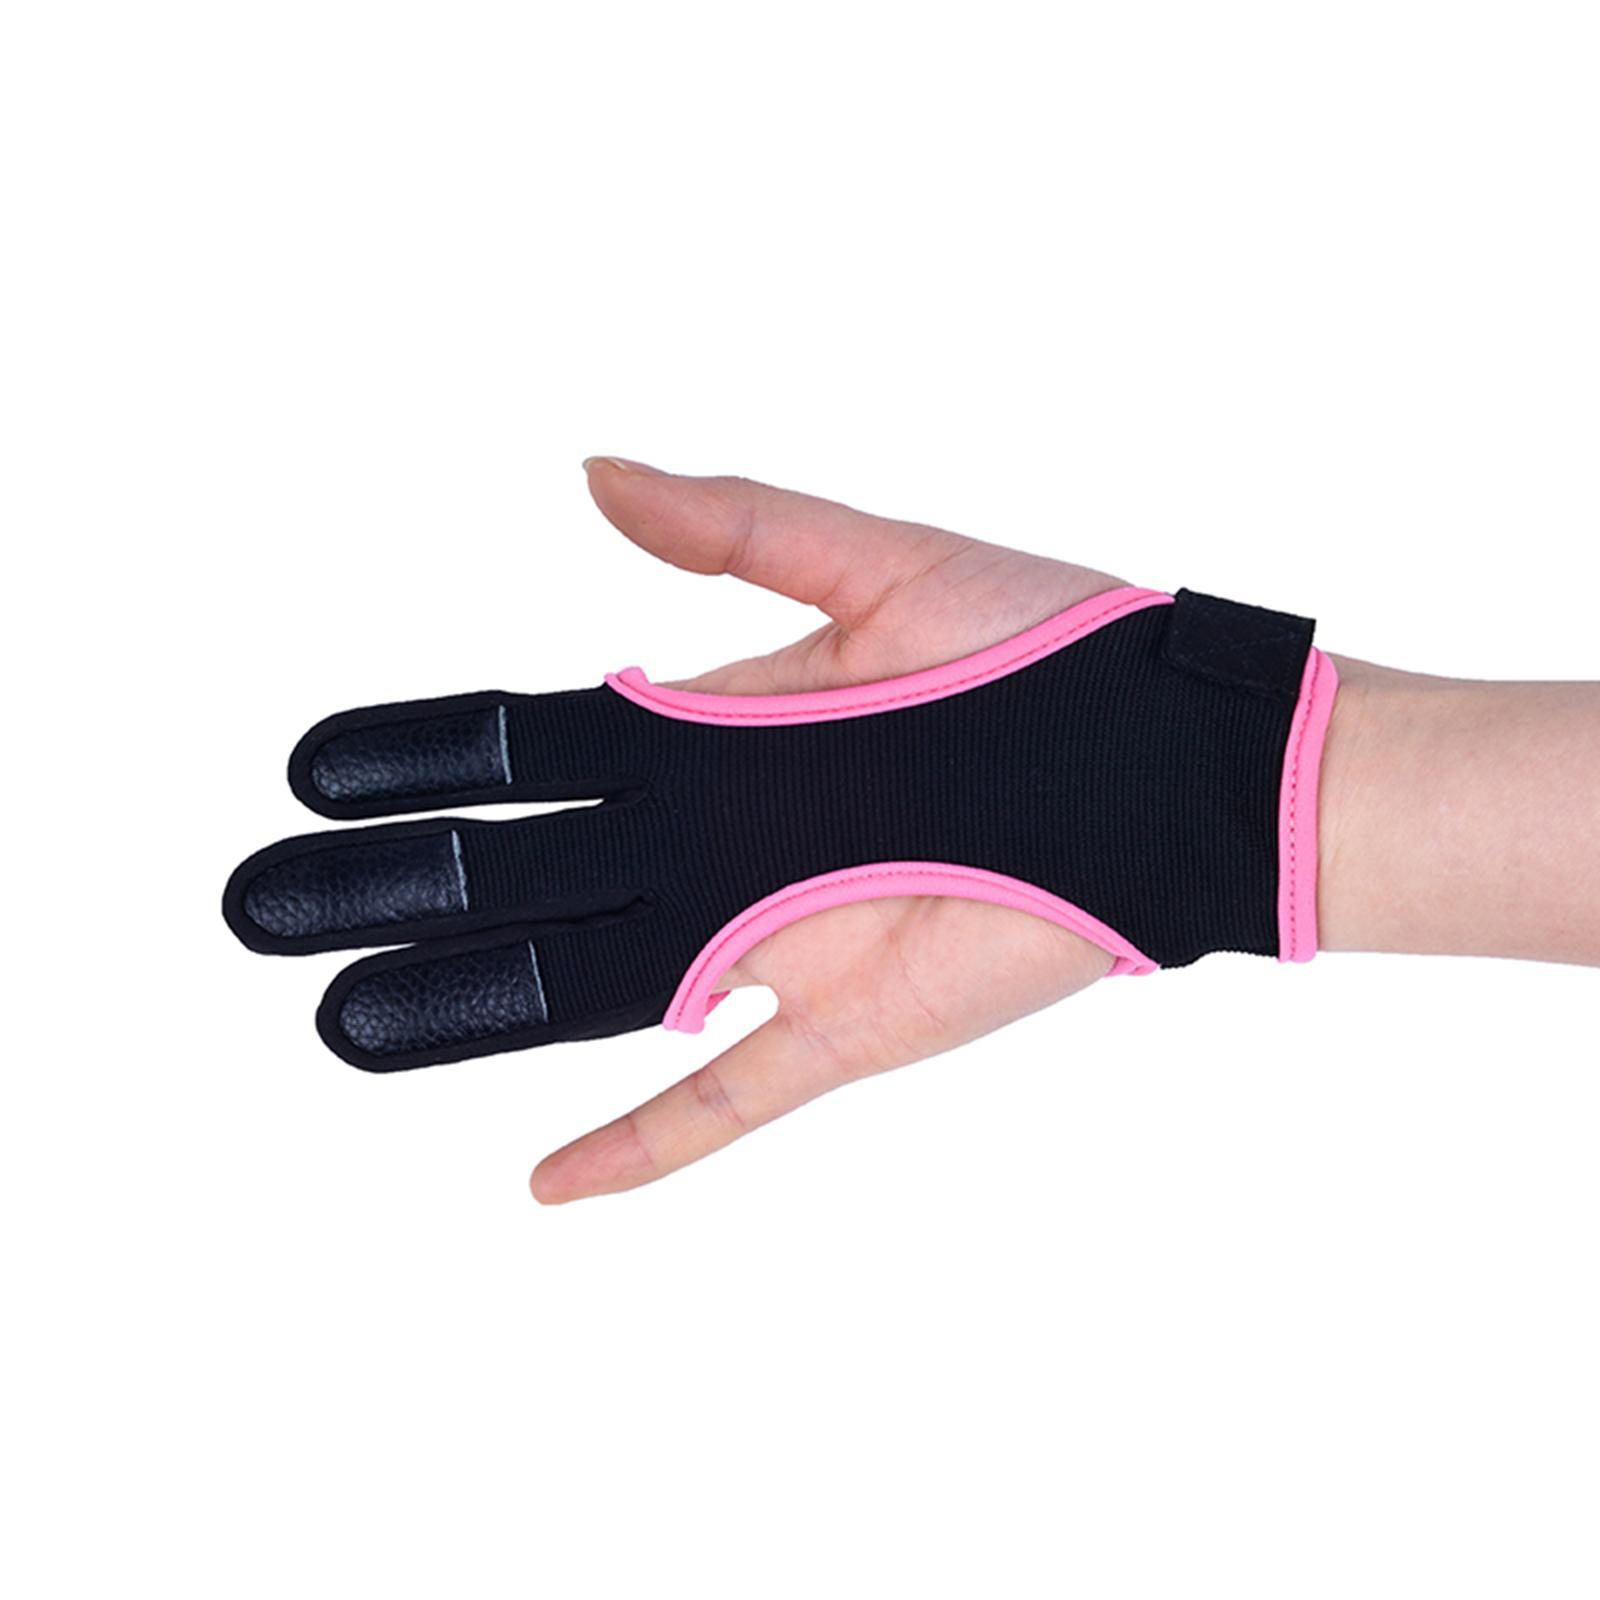 thumbnail 49 - Archery Glove for Recurve & Compound Bow 3 Finger Guard for Women Men Youth